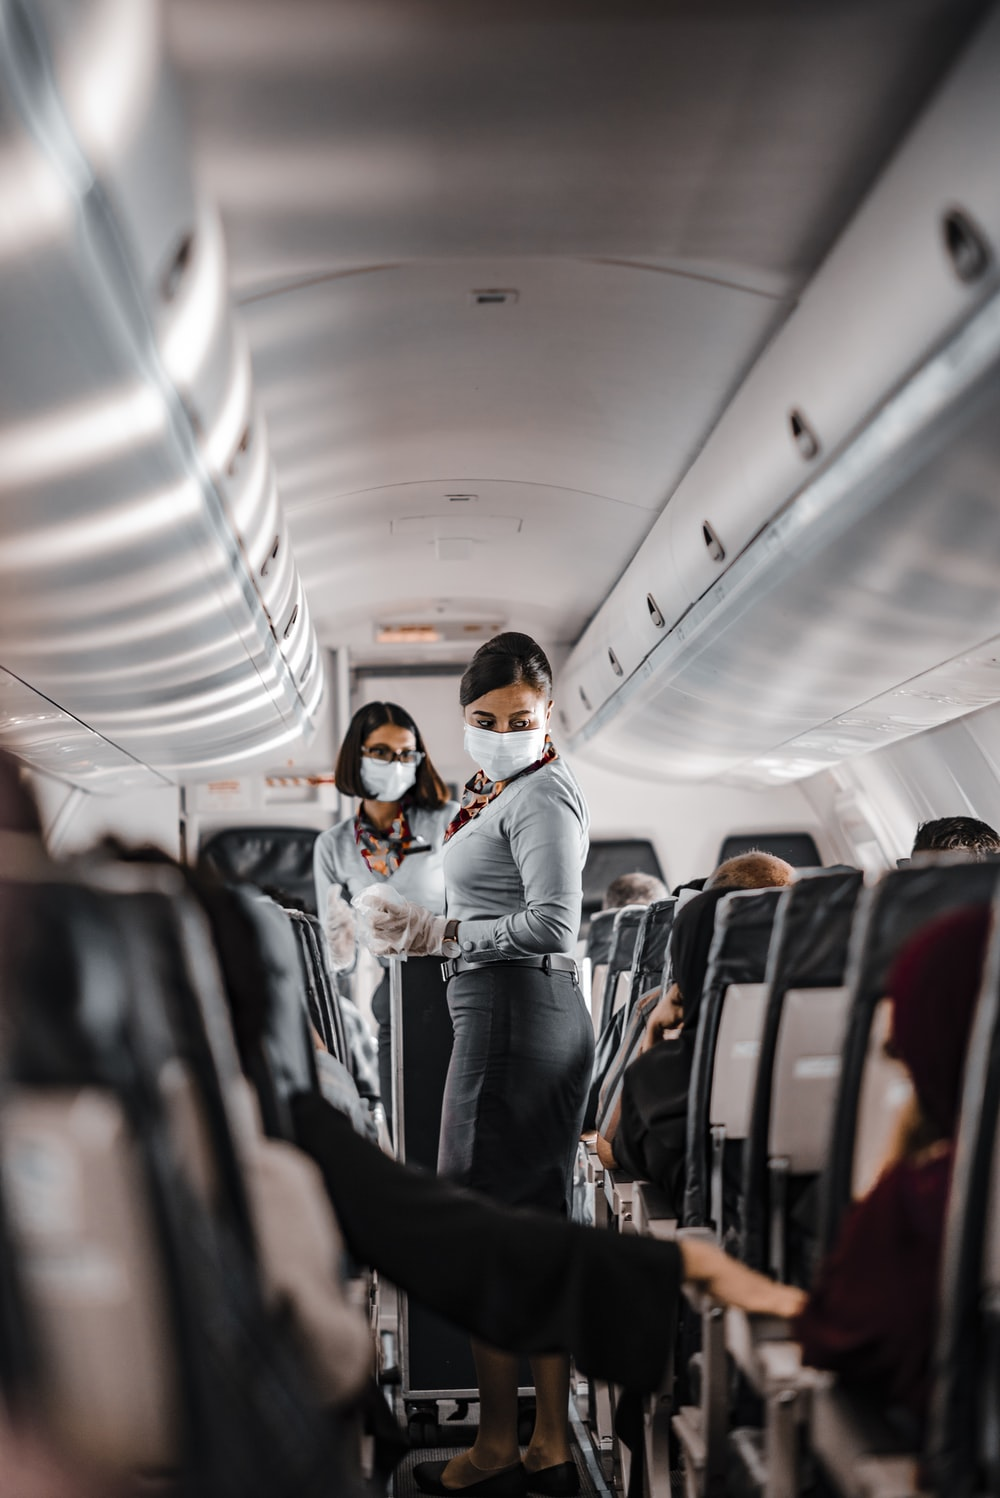 air hostess wearing a facemask standing in the aisle of an aeroplane